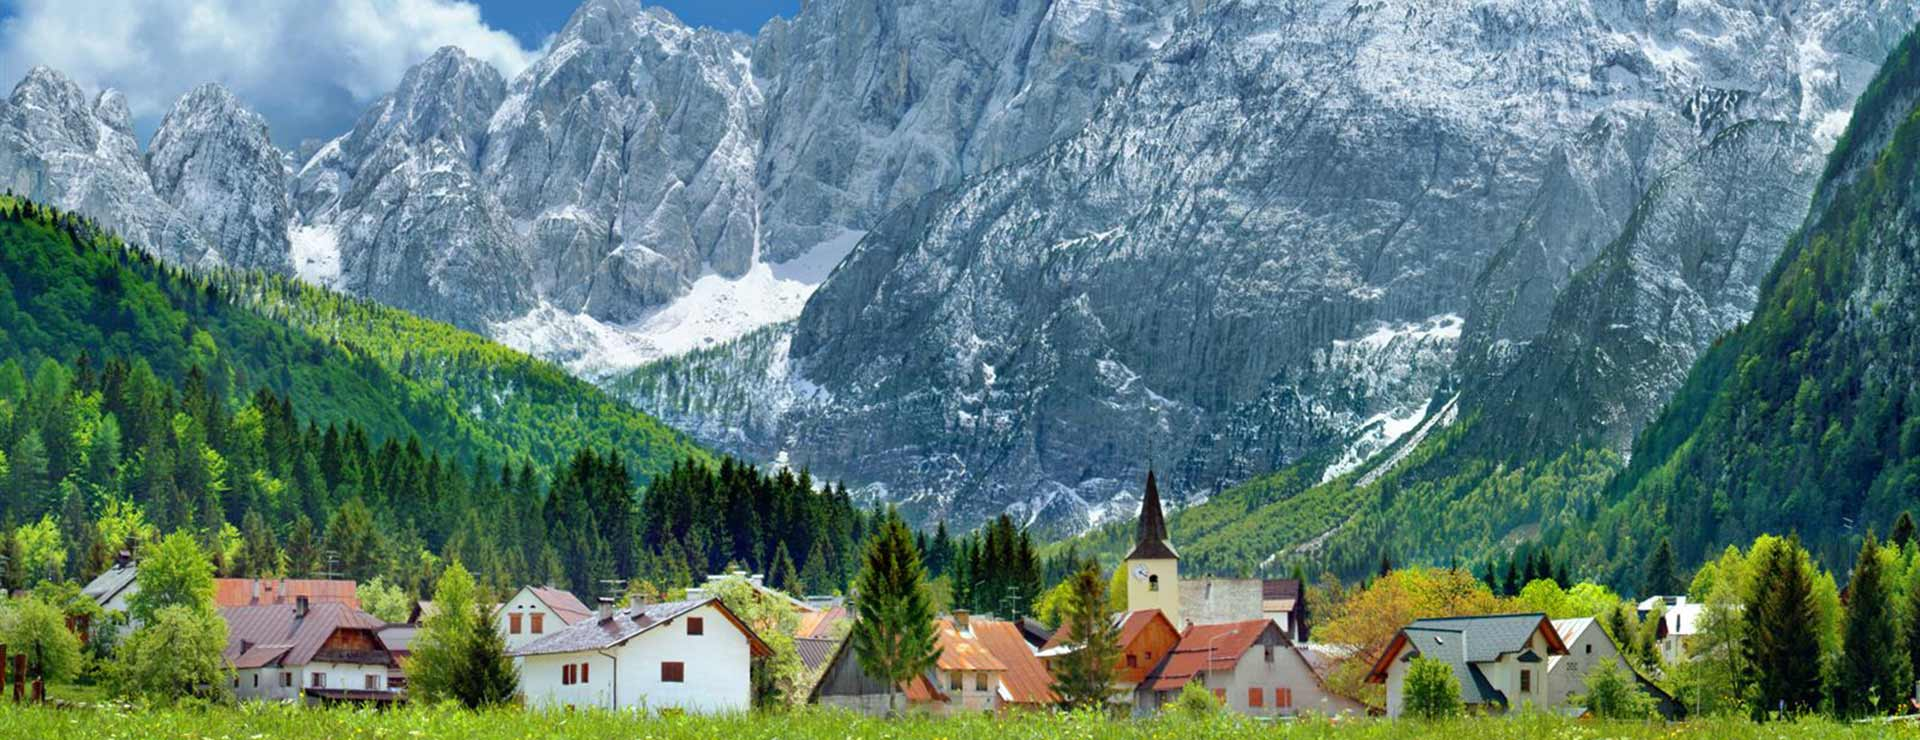 Summer holidays in Trentino and Dolomites